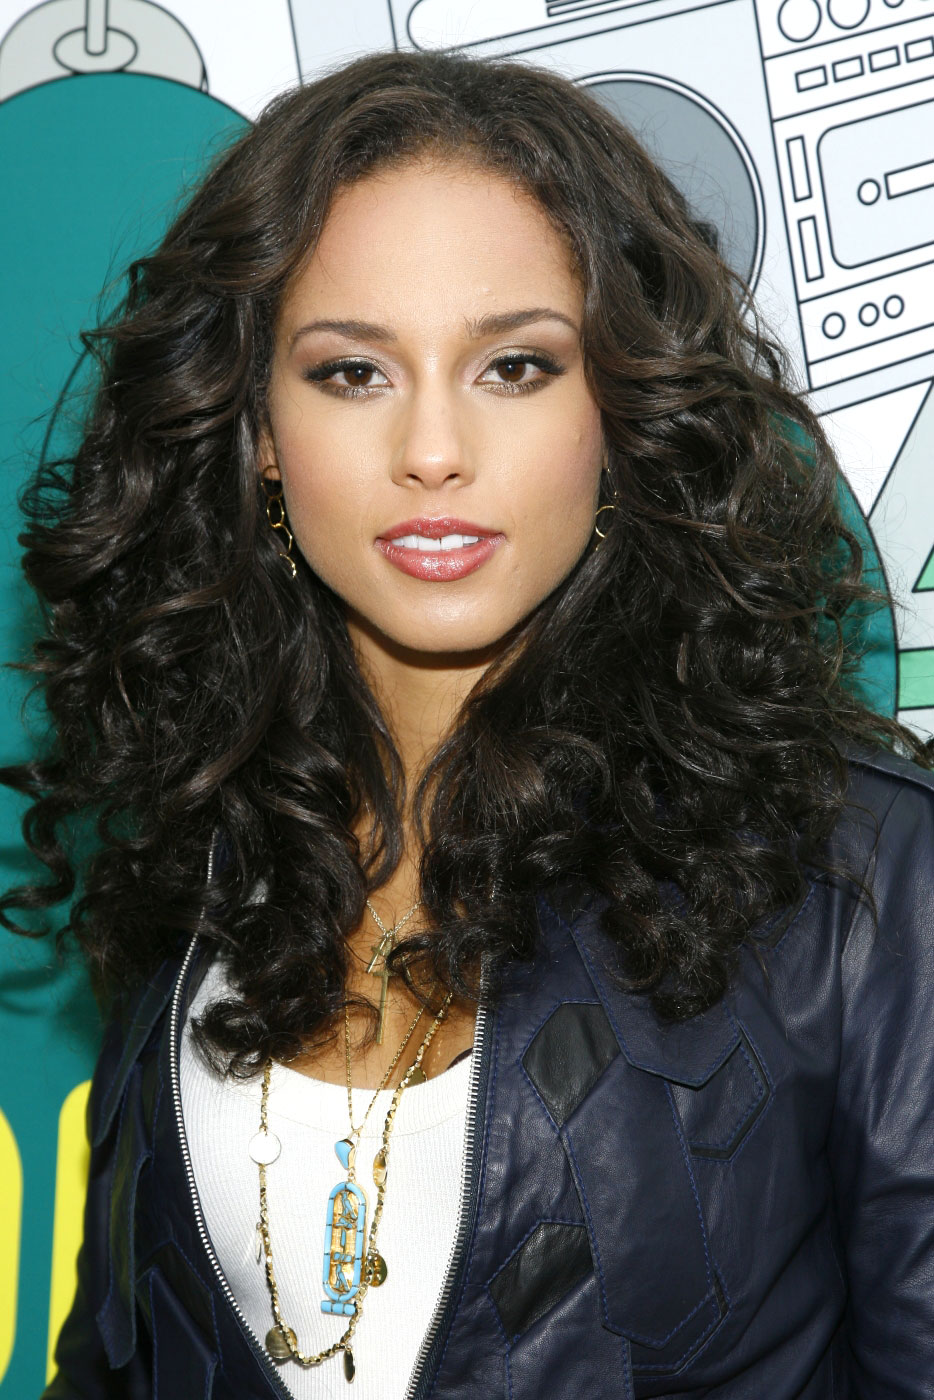 For Alicia Junior Girls Clothing Kids Clothes Kids: Alicia Keys' Wax Figure: Accurate Or Too